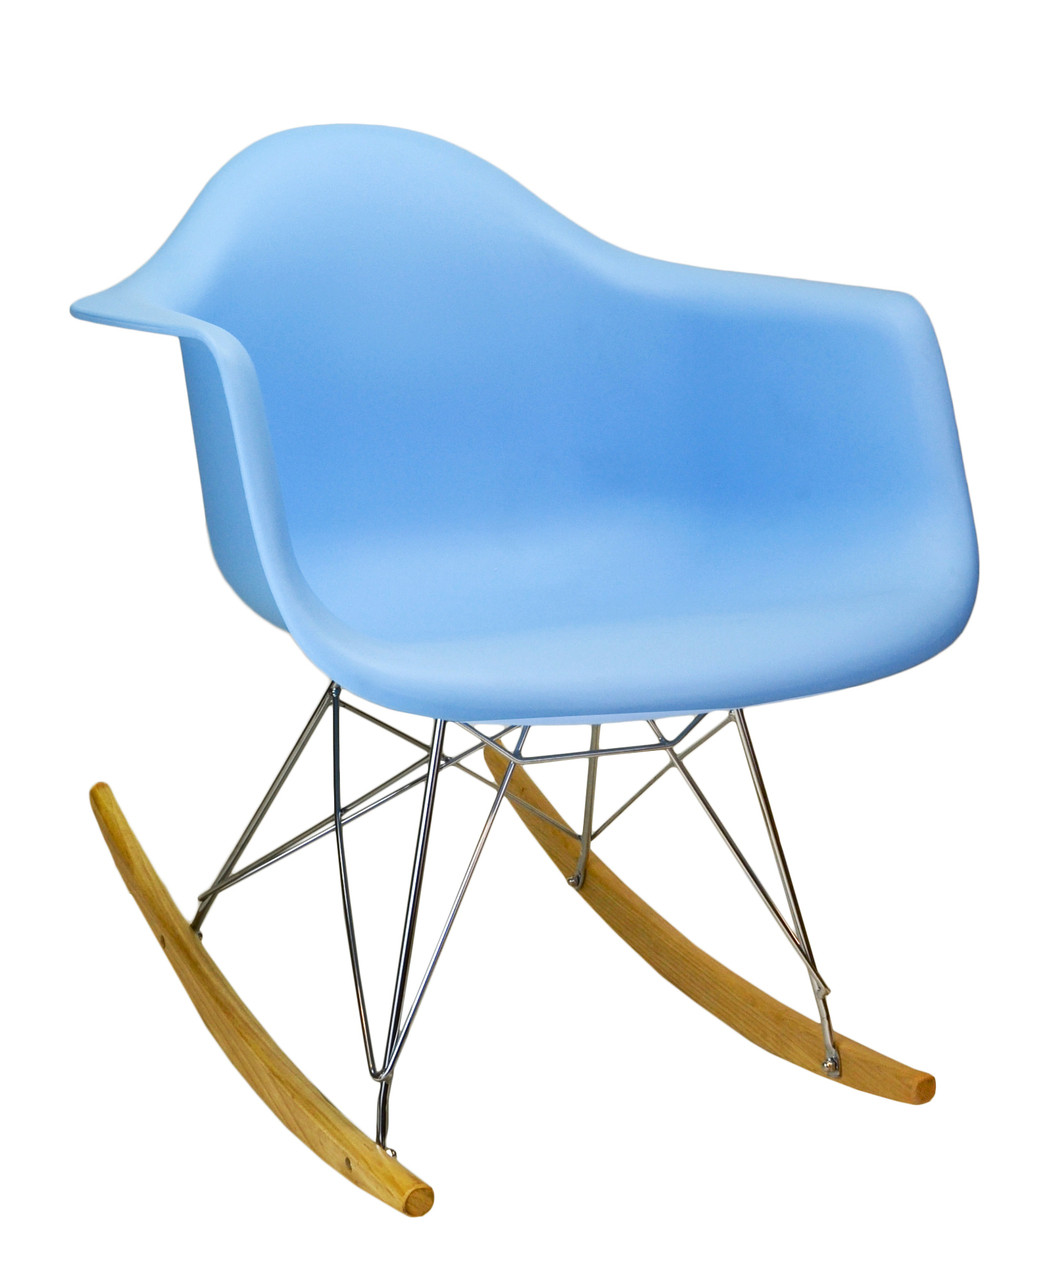 ... Chairs Lounge Chairs Charles Eames Molded RAR Rocking Chair in Blue